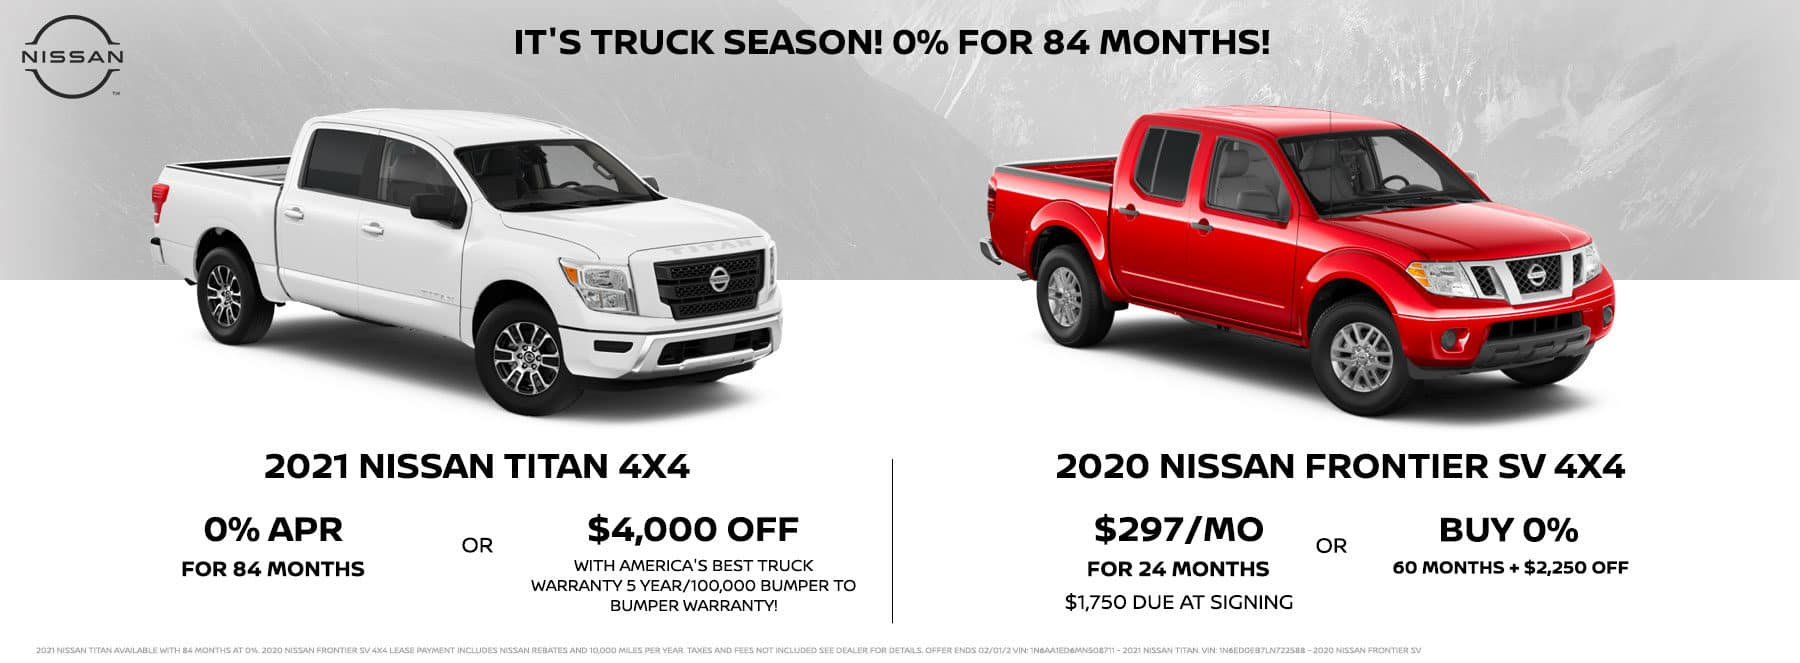 2021 Nissan Titan and 2020 Nissan Frontier SV